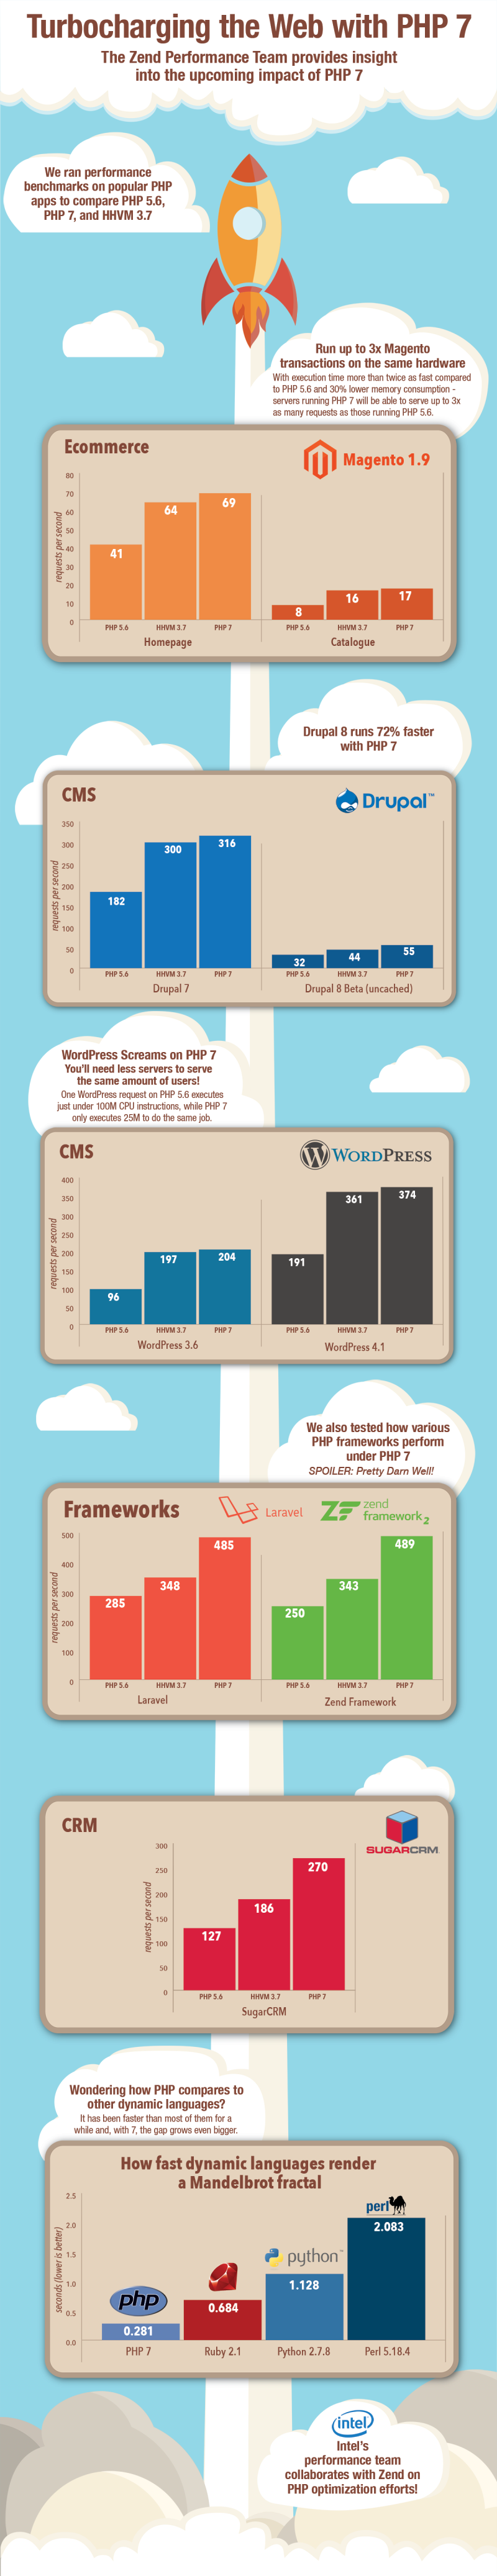 PHP 7 Performance Infographic